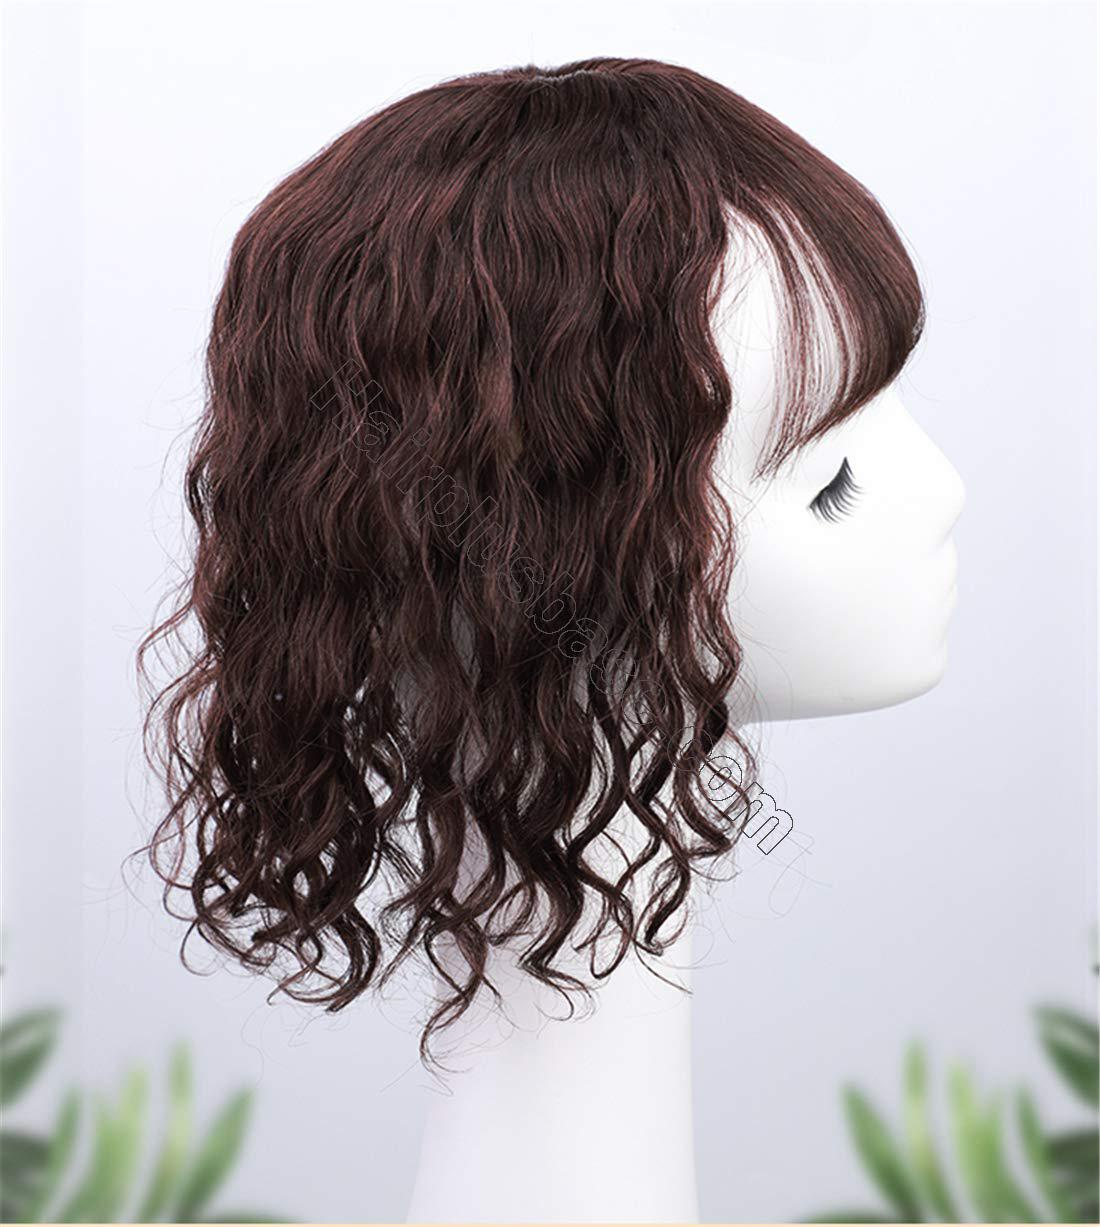 Real Human Hair Crown Hair Pieces Curly Hair Topper with Bangs for Women with Thinning Hair 5